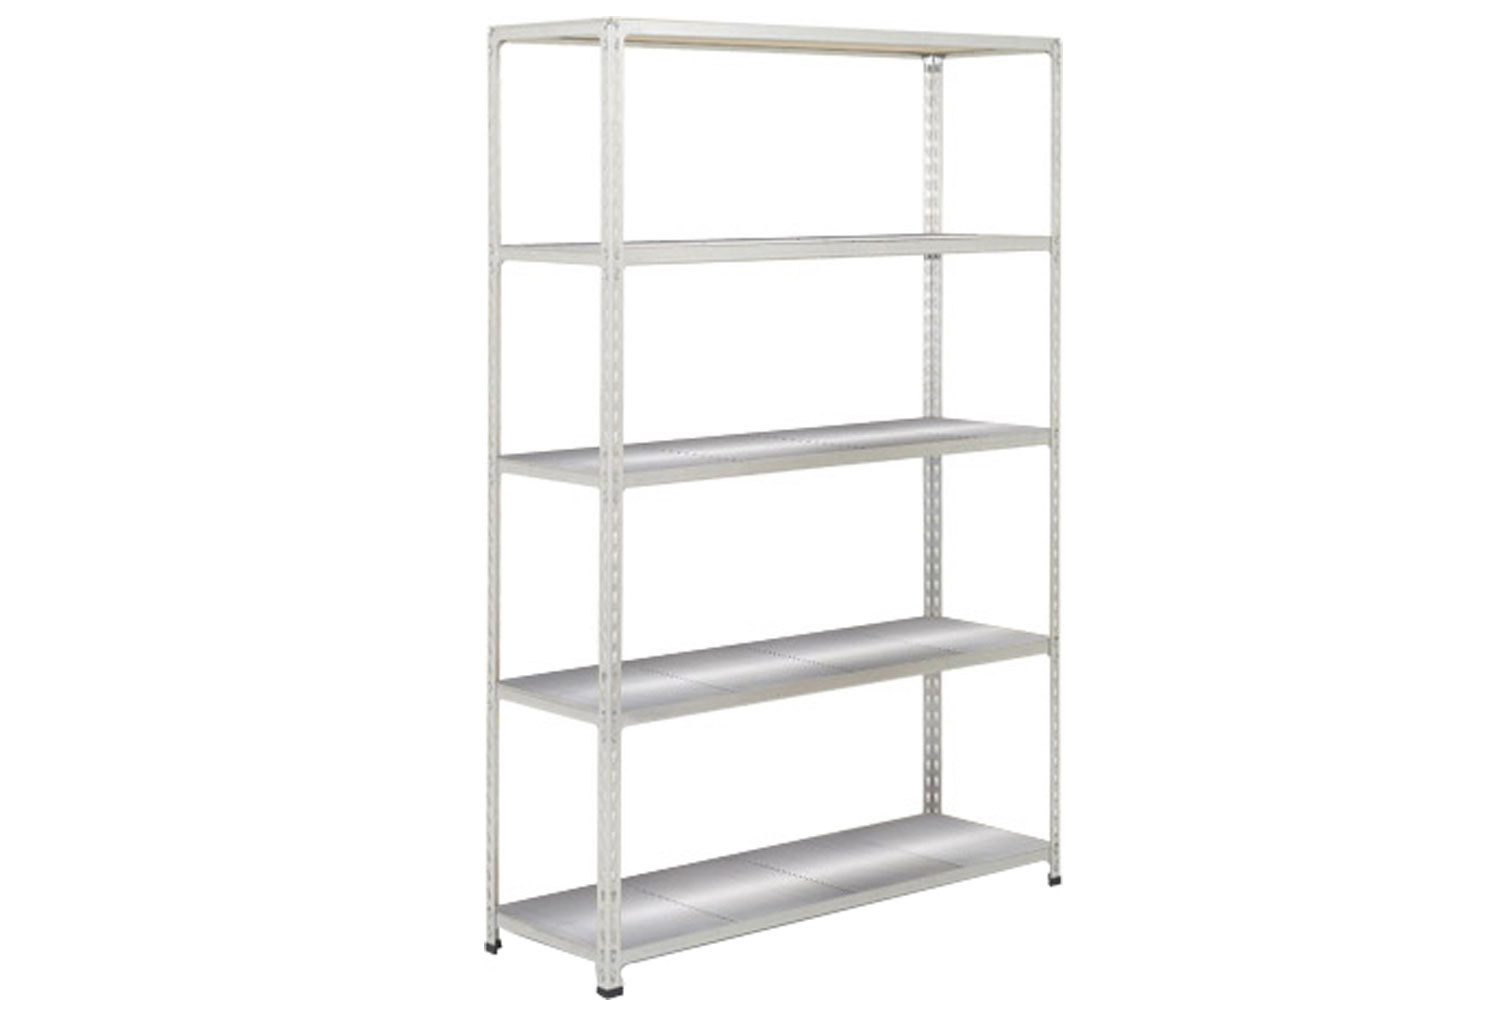 Rapid 2 Shelving With 5 Galvanized Shelves 1525wx1980h (Grey)